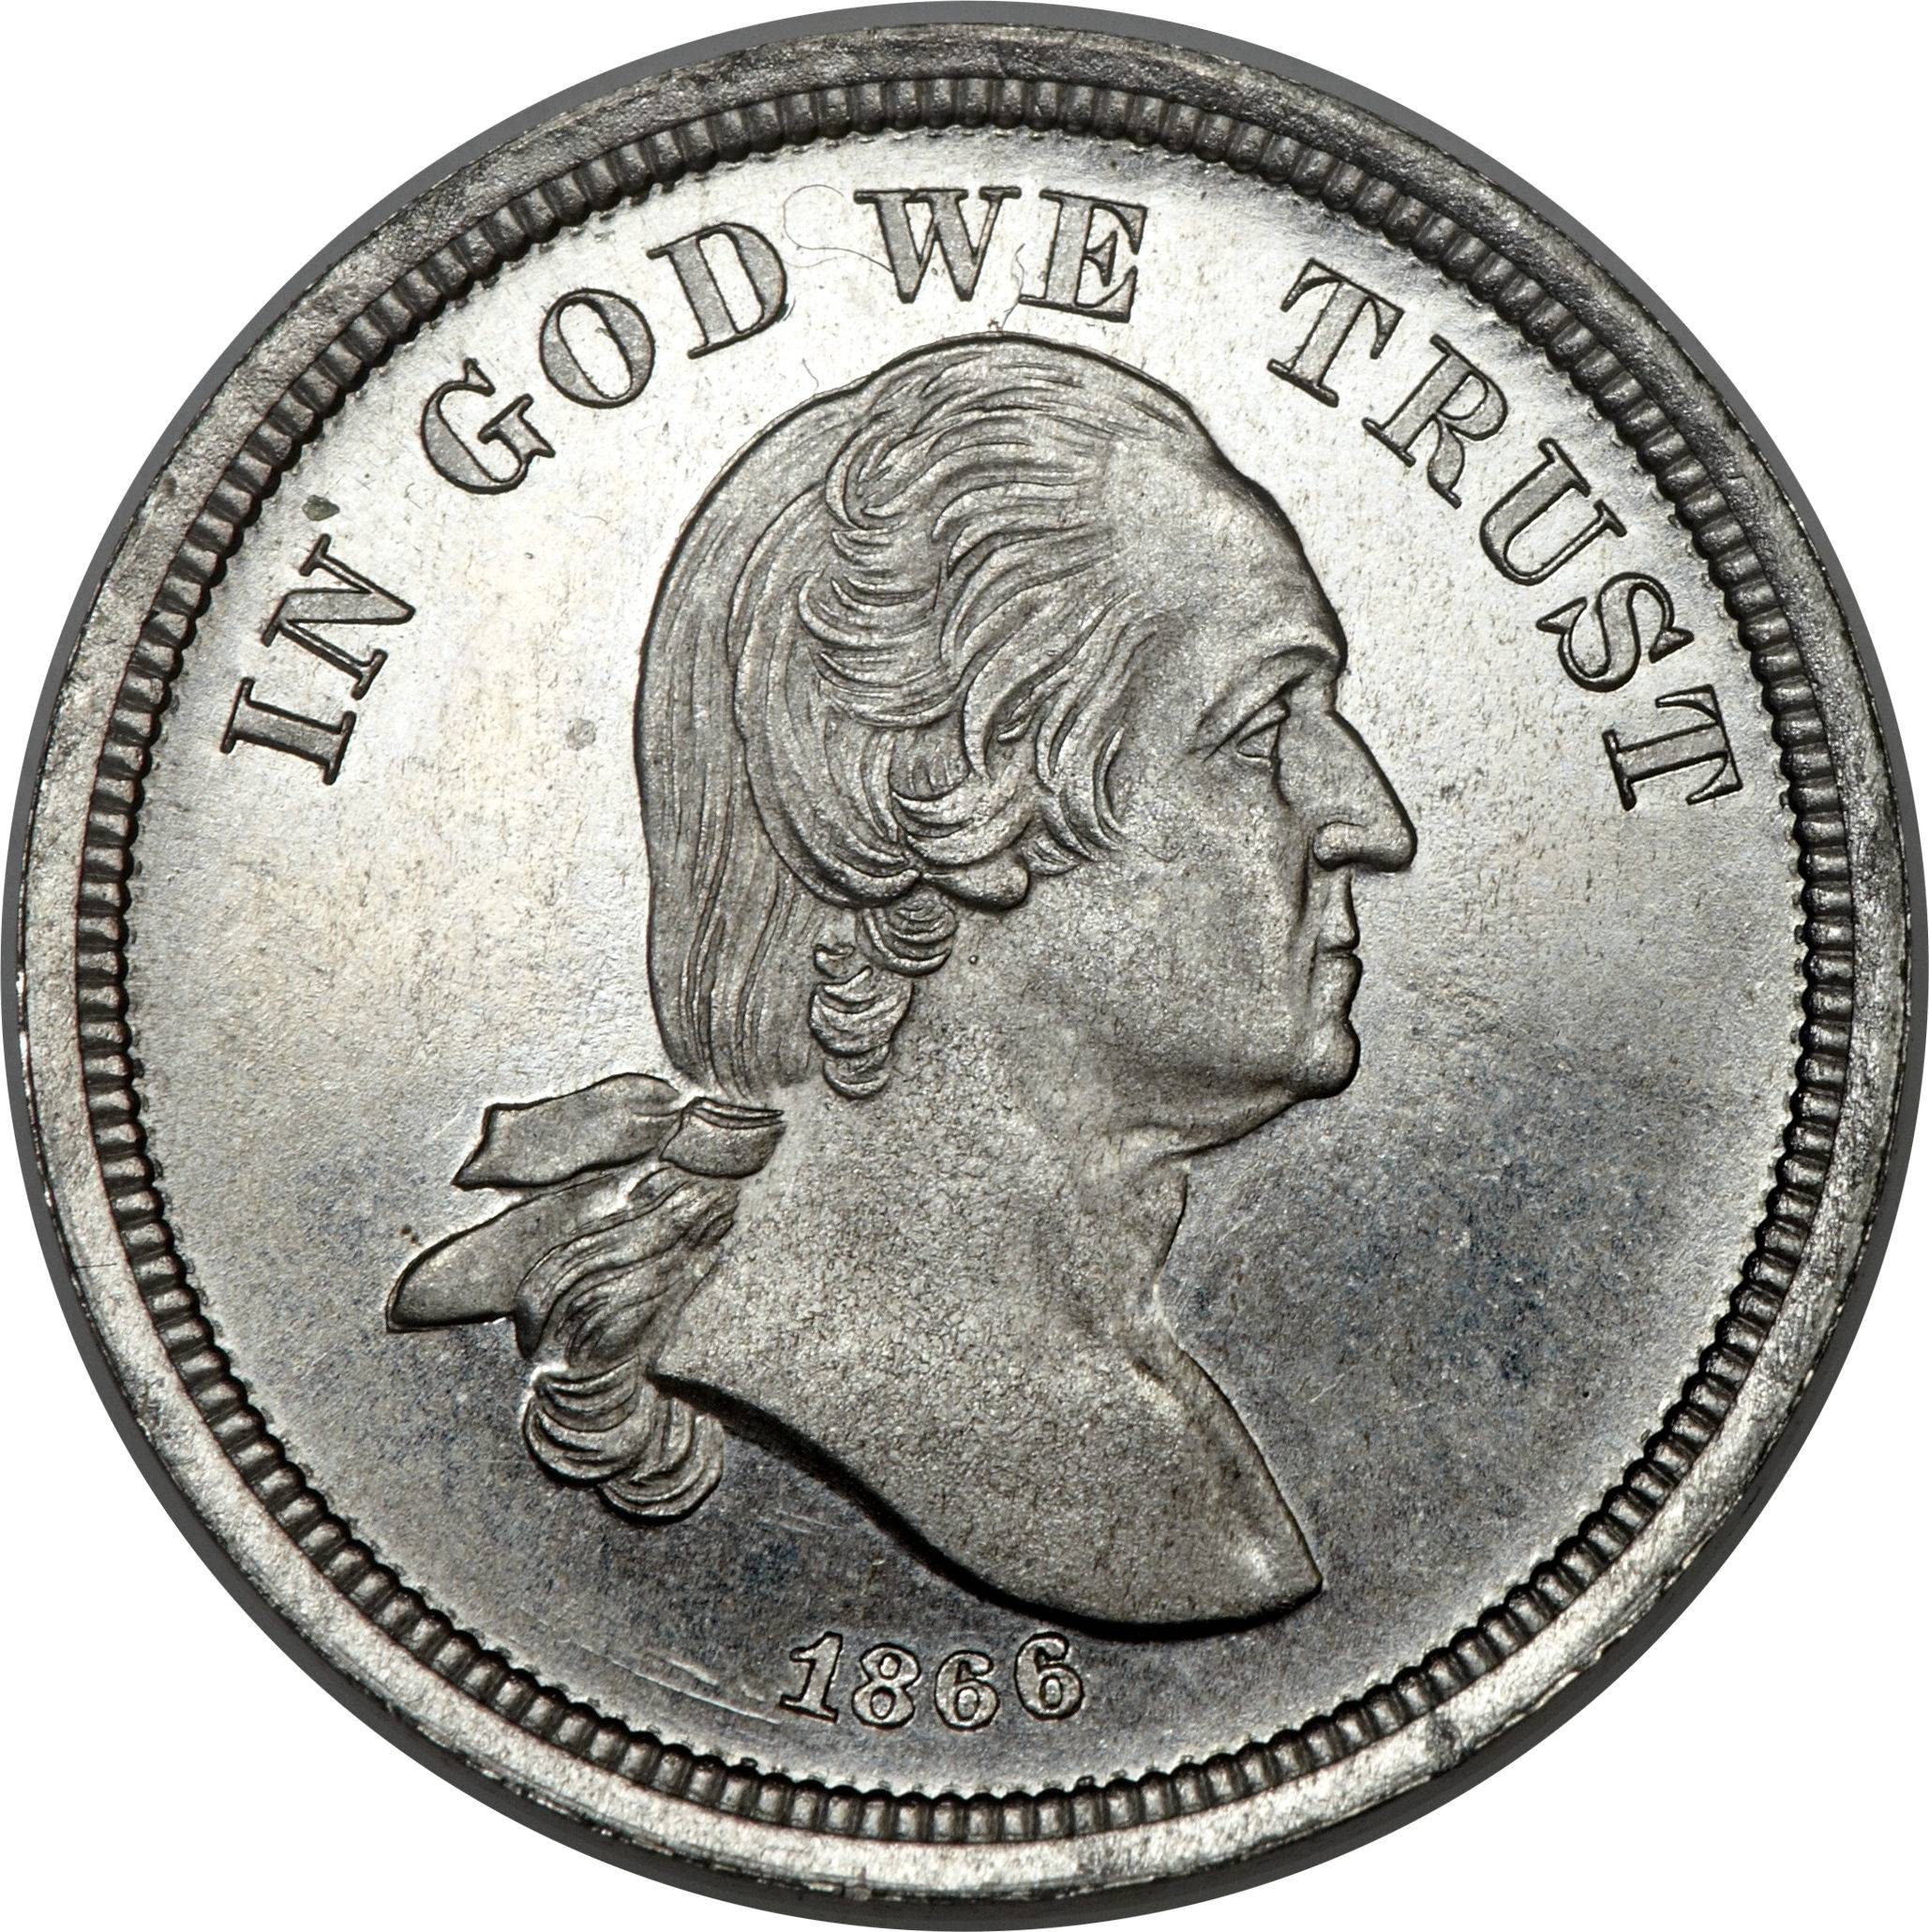 One of the historic experimental coins from the collection of the late Texas businessman and philanthropist Harry W. Bass, Jr. that will be offered by Heritage Auctions at the 2014 World's Fair of Money today in Rosemont.